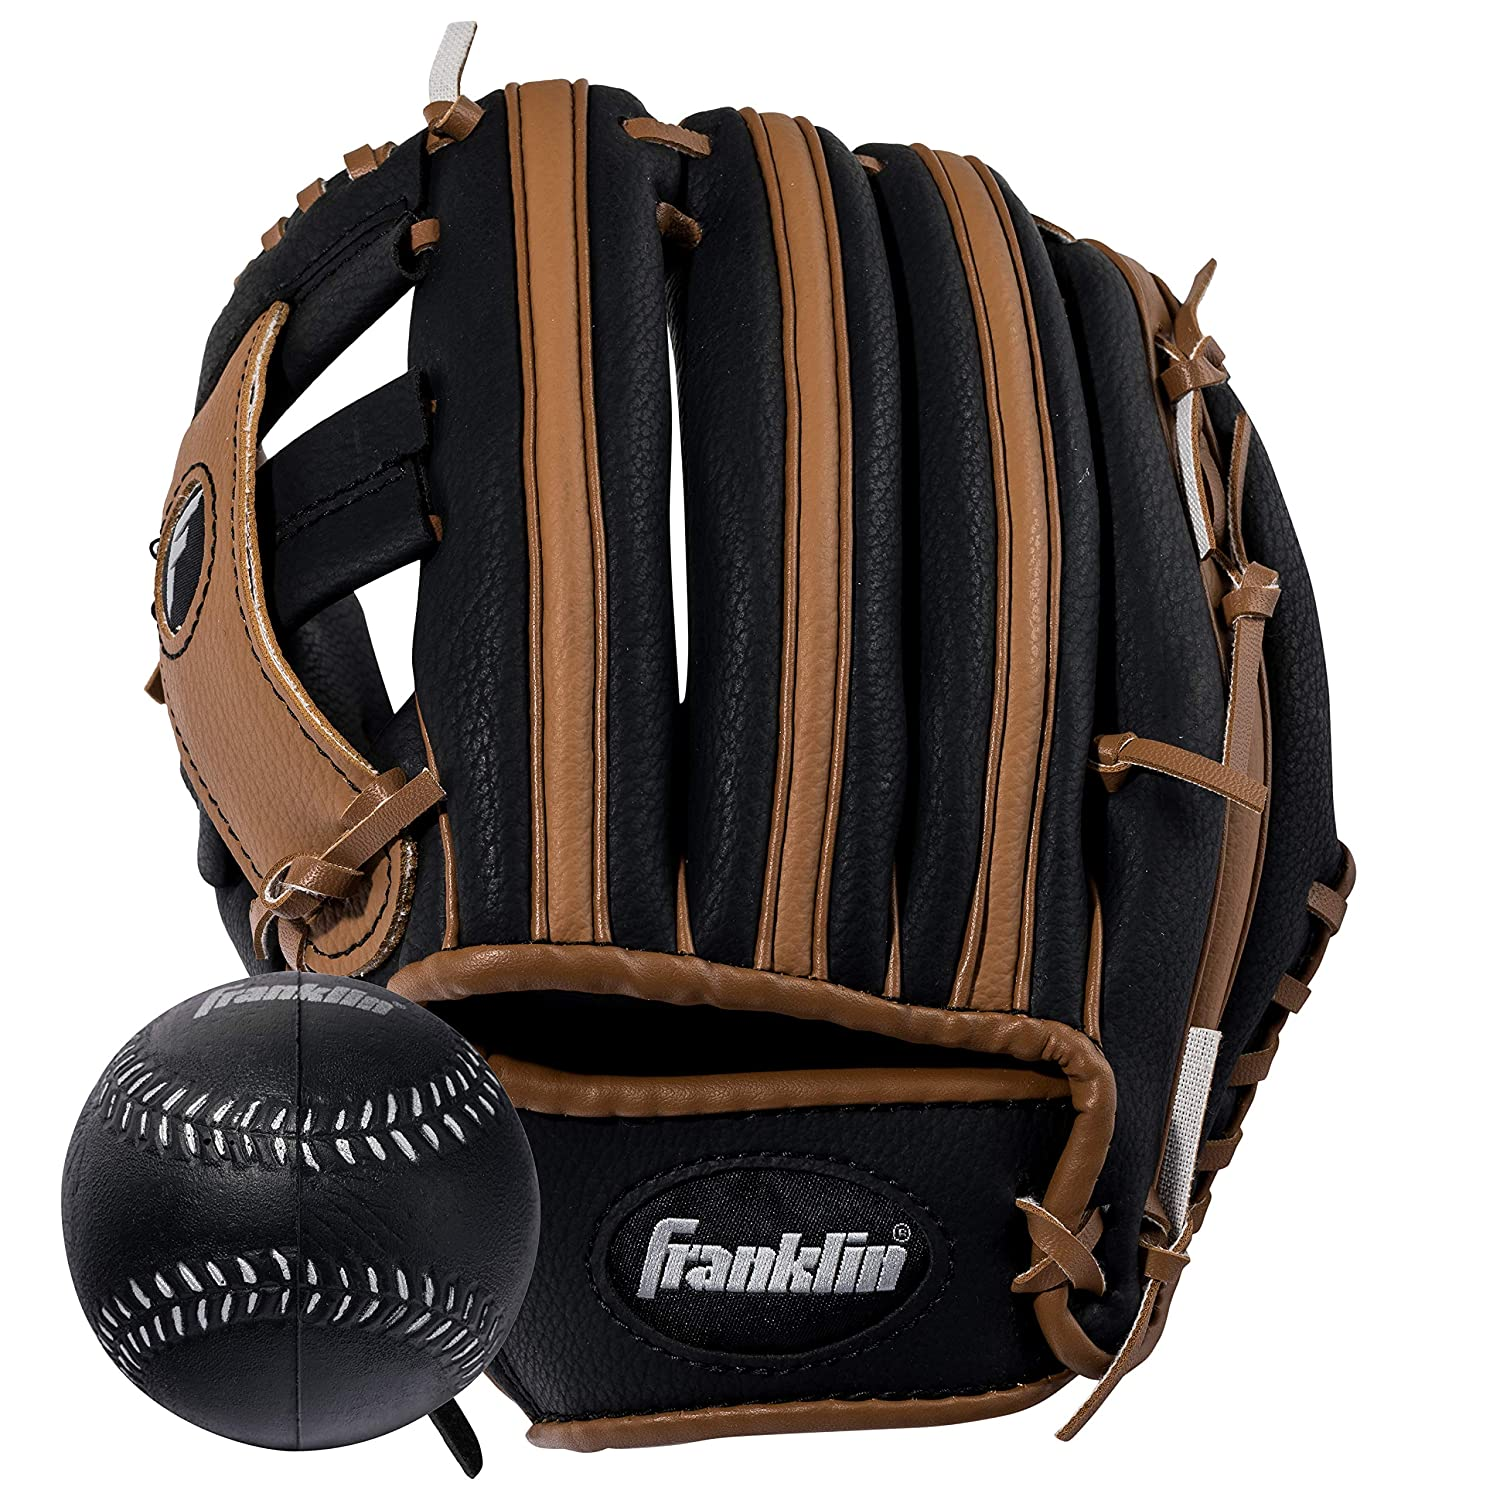 Franklin Sports Teeball Glove  - Top 10 best youth baseball gloves